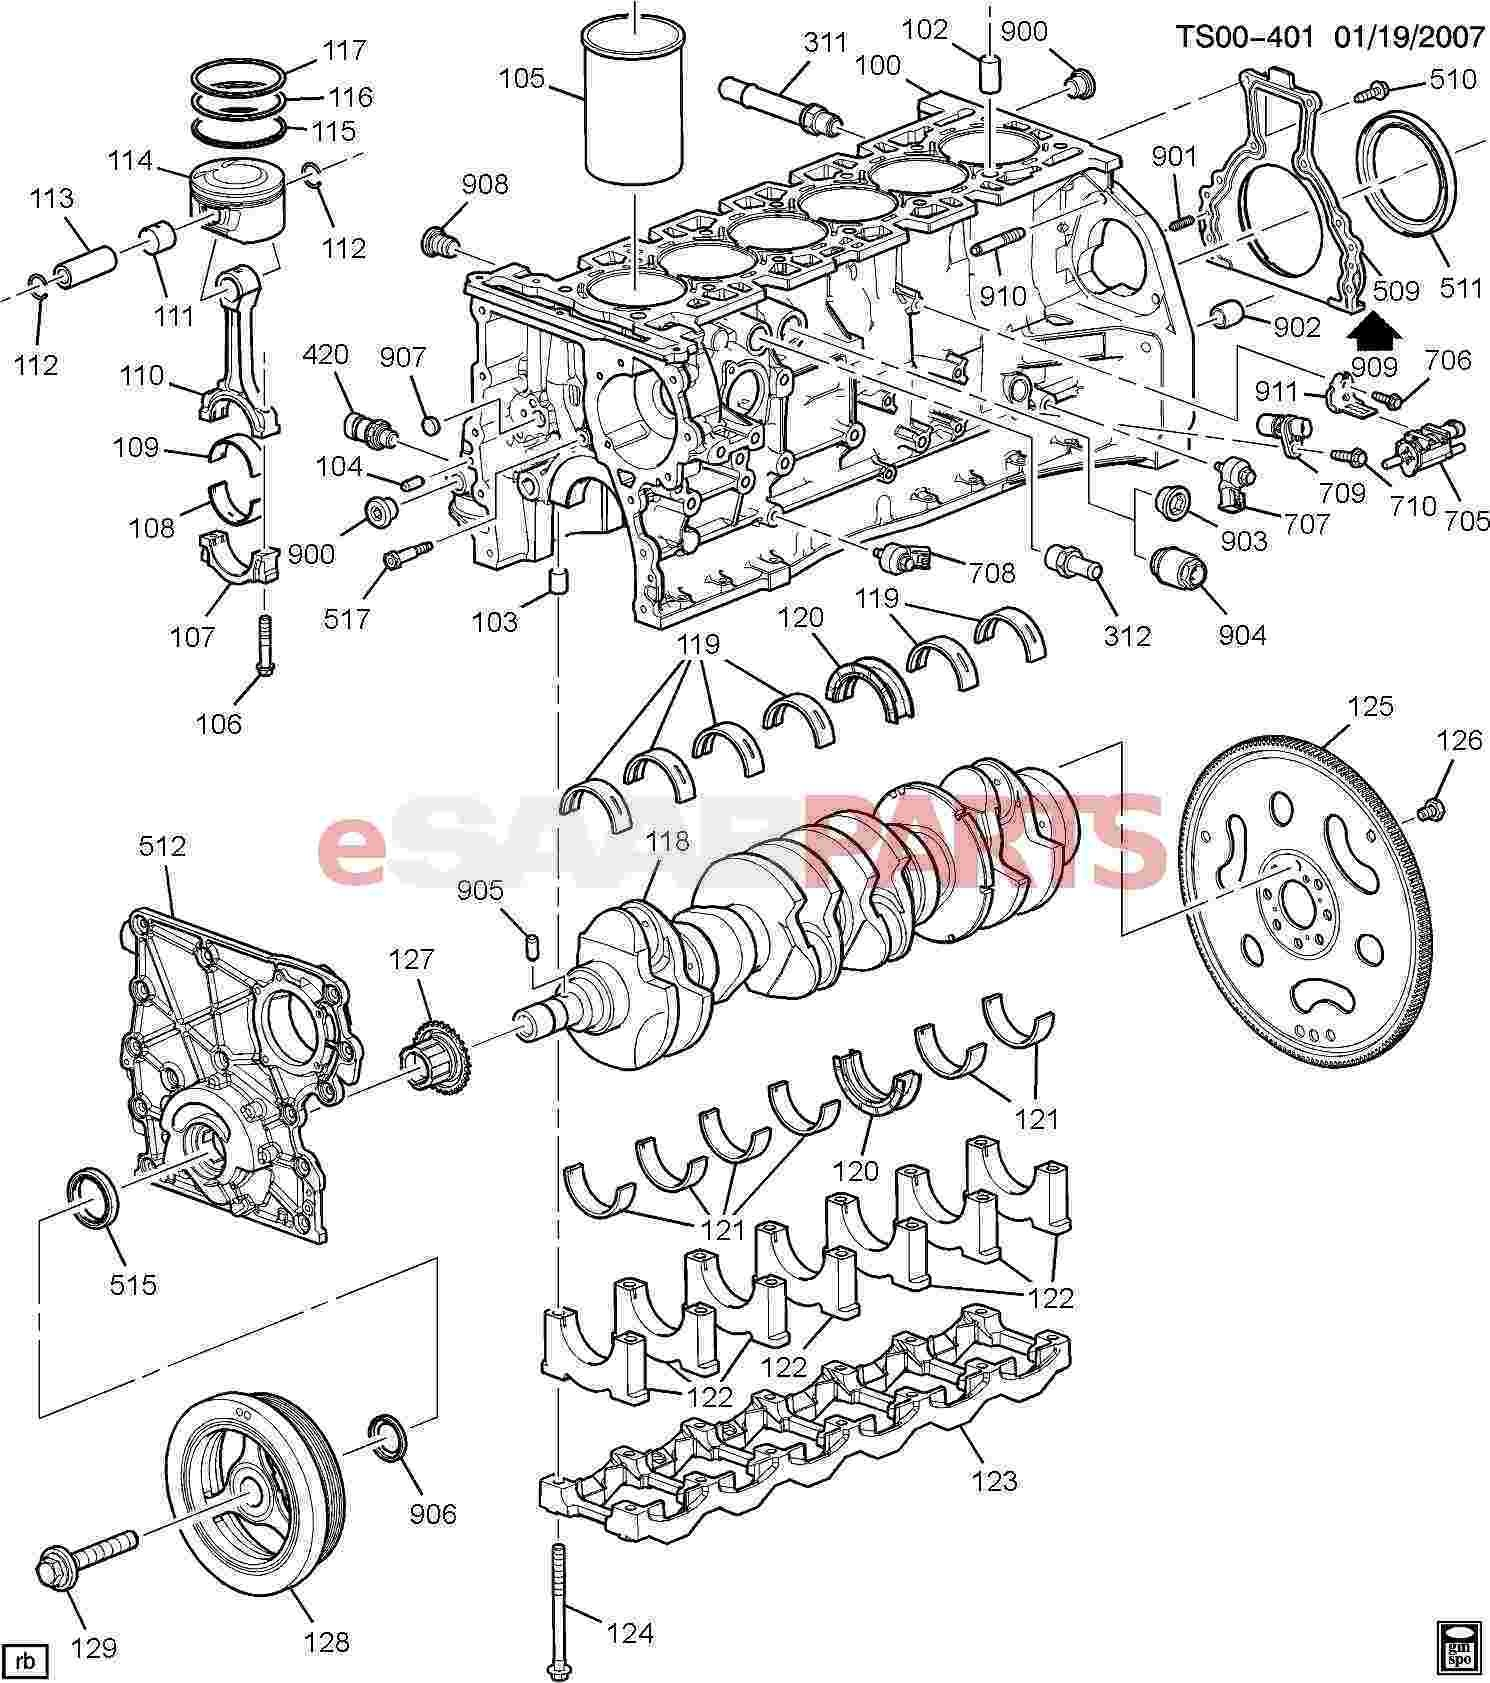 Gm Parts Diagrams with Part Numbers Esaabparts Saab 9 7x Engine Parts Engine Internal 4 2s Of Gm Parts Diagrams with Part Numbers